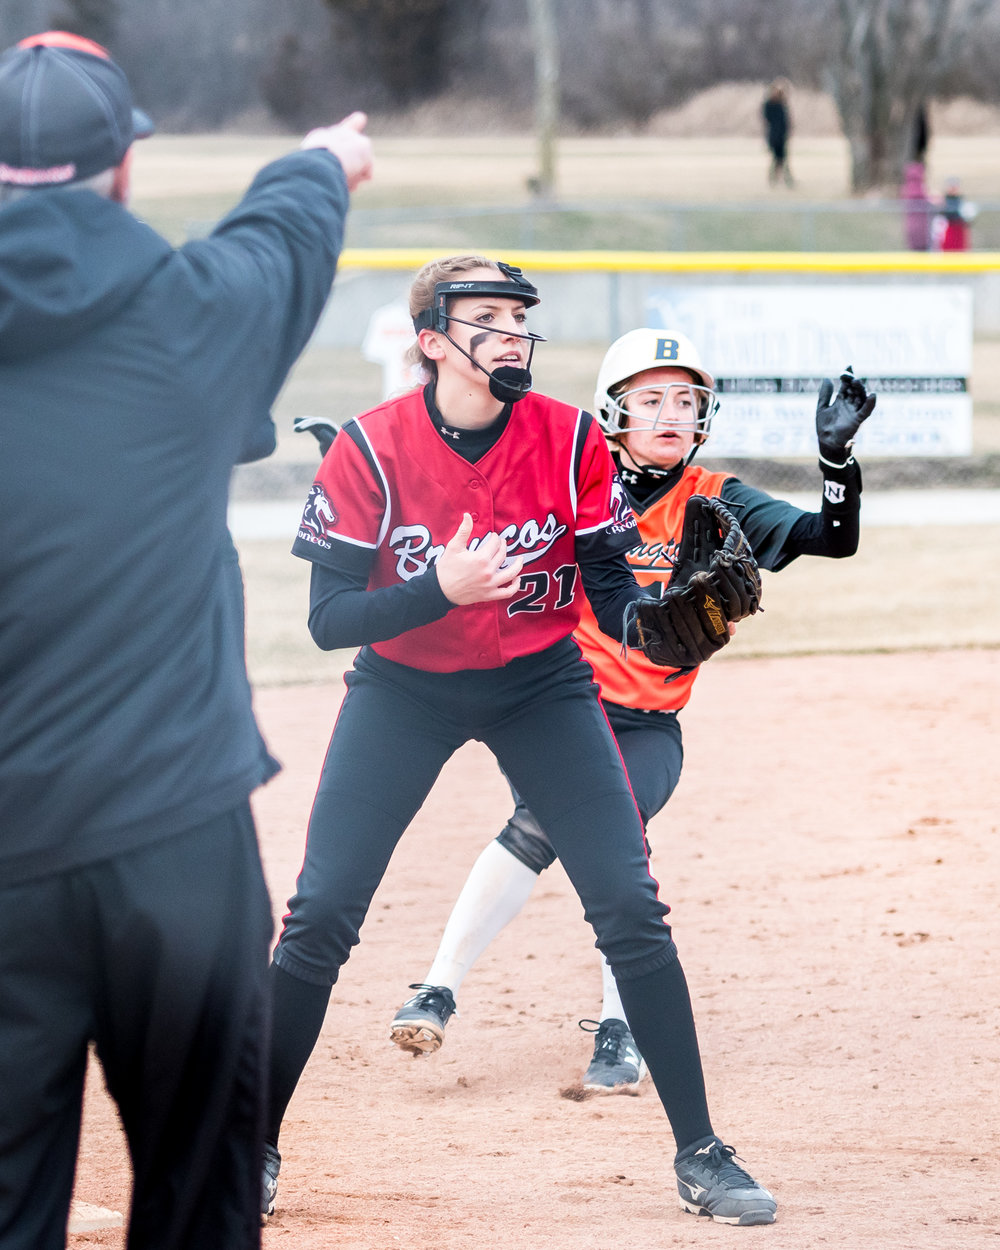 Burlington @ UG Softball_Low Res-15.jpg